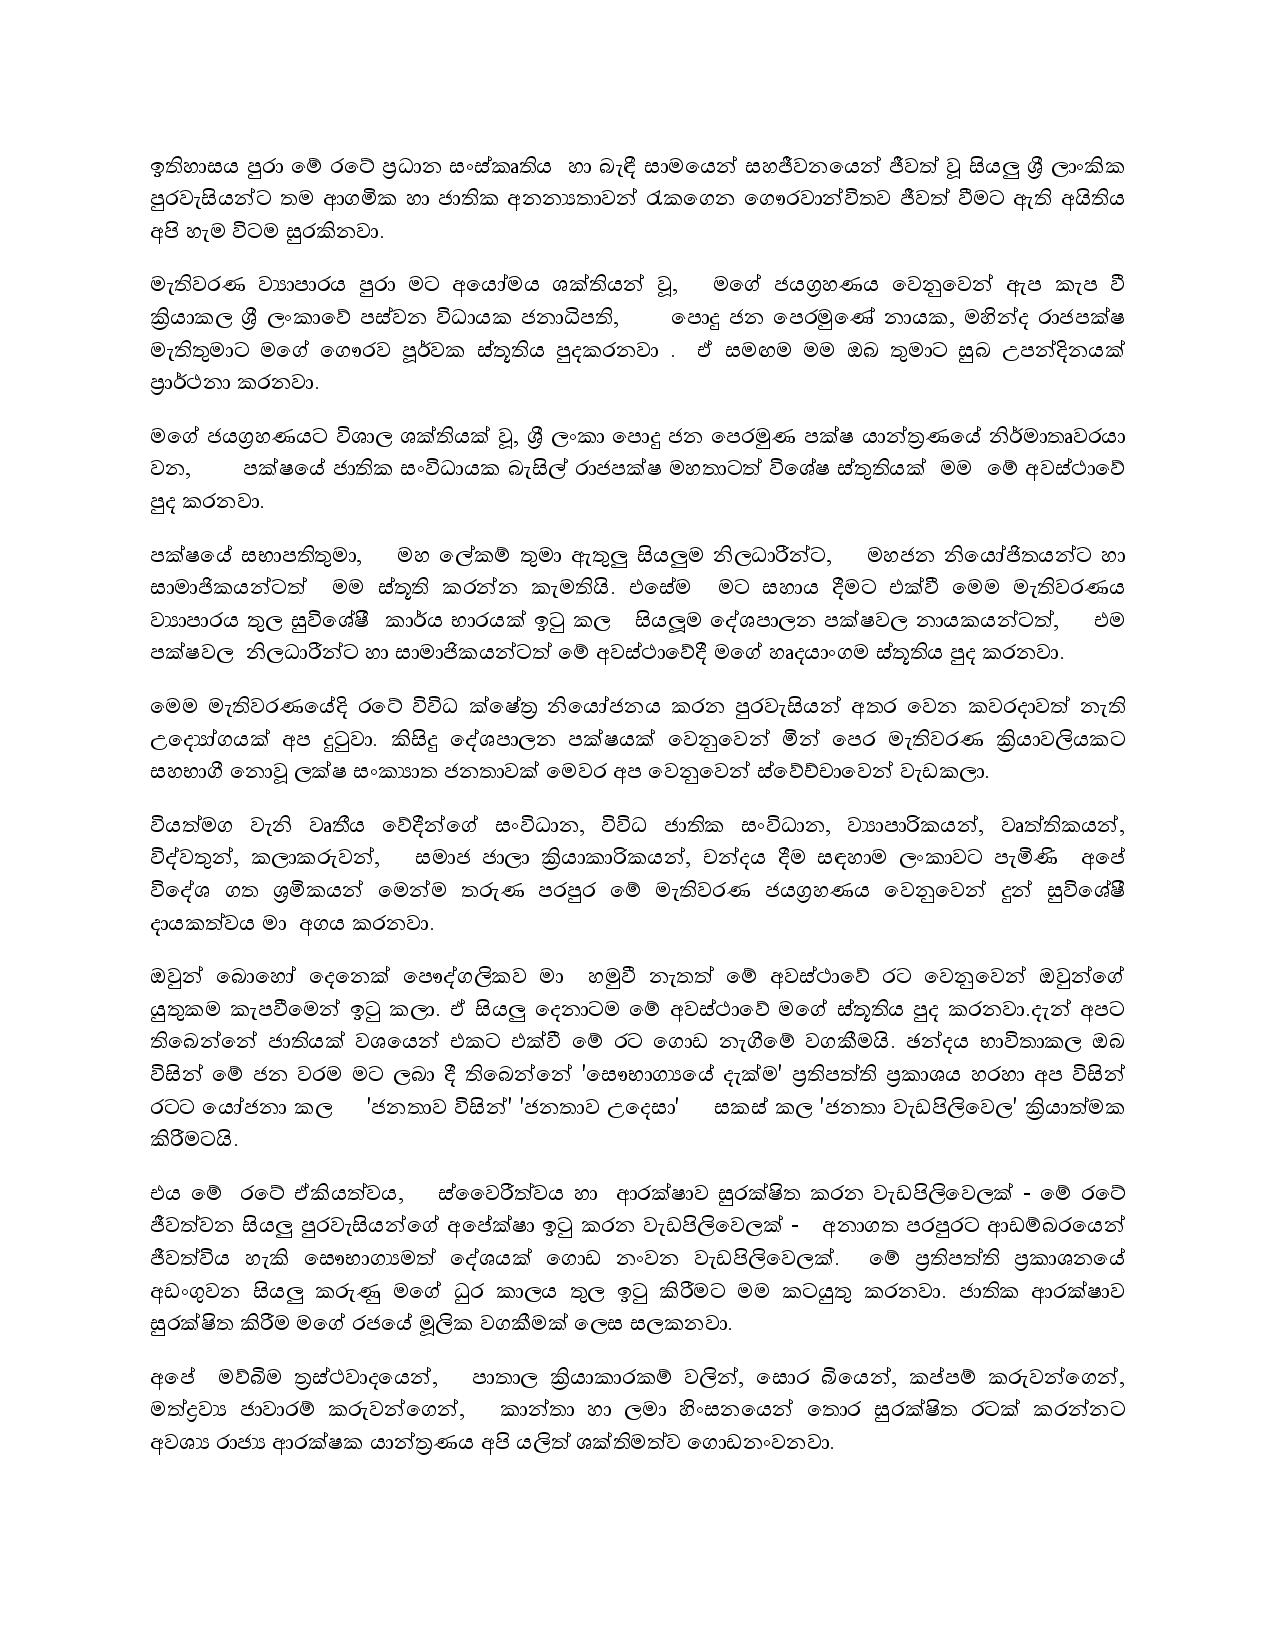 2019.11.18 Speech Made By HE the President Gotabaya Rajapaksa at Ruvanweli Se Pudabima 11 page 002